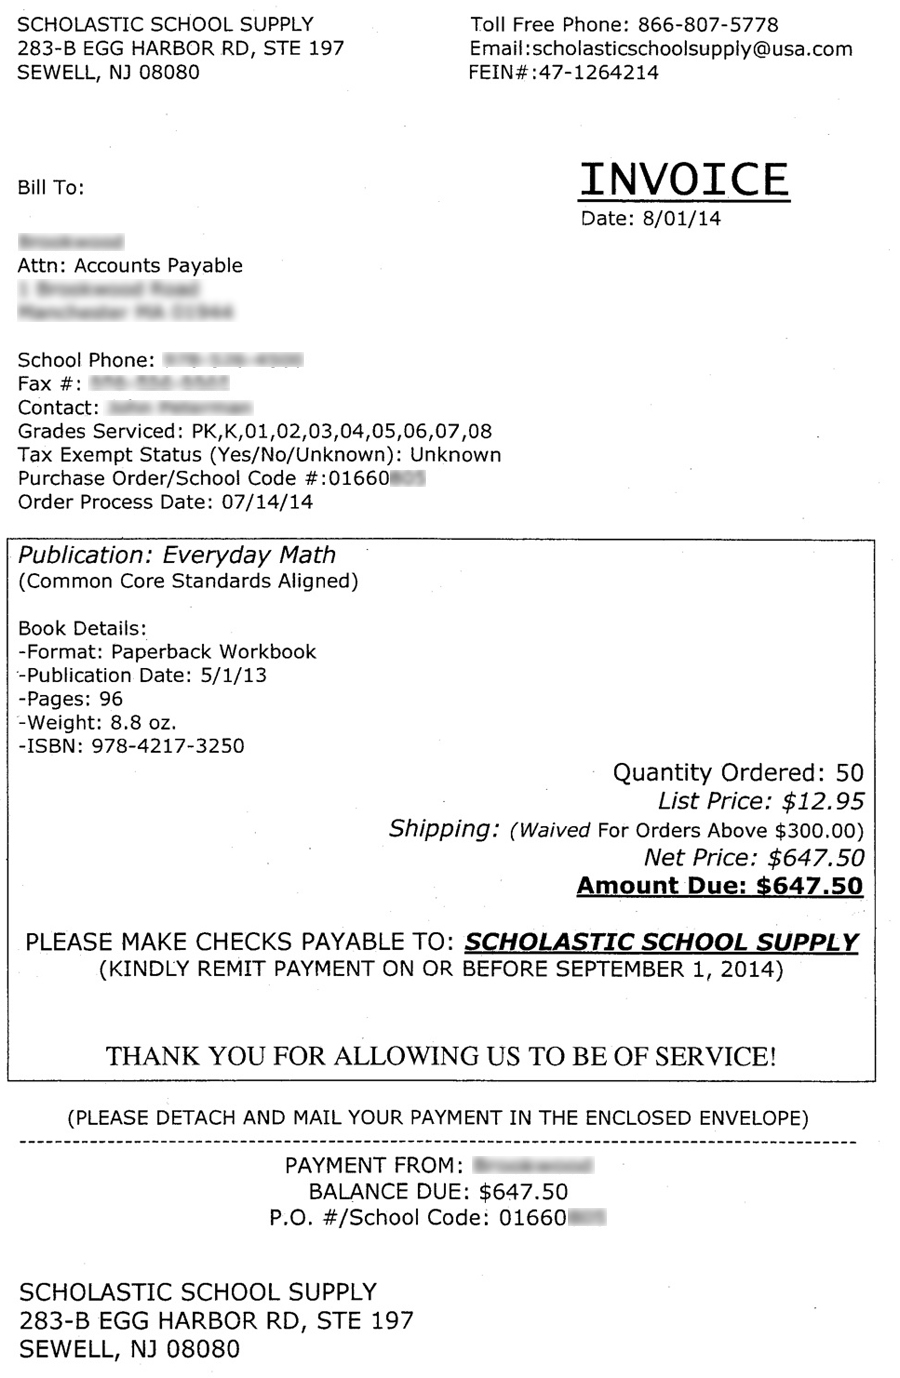 Receipts Printer Excel The Daily Scam  Fake Bills And Invoices Third Party Invoicing Word with Lic Premium Receipt Statement Word Did You Notice The Email Address Listed In The Scholastic School Supply  Invoice It Is Scholasticschoolsupply Usacom Usacom Is A Legitimate  Business And  Invoicing Templates Excel